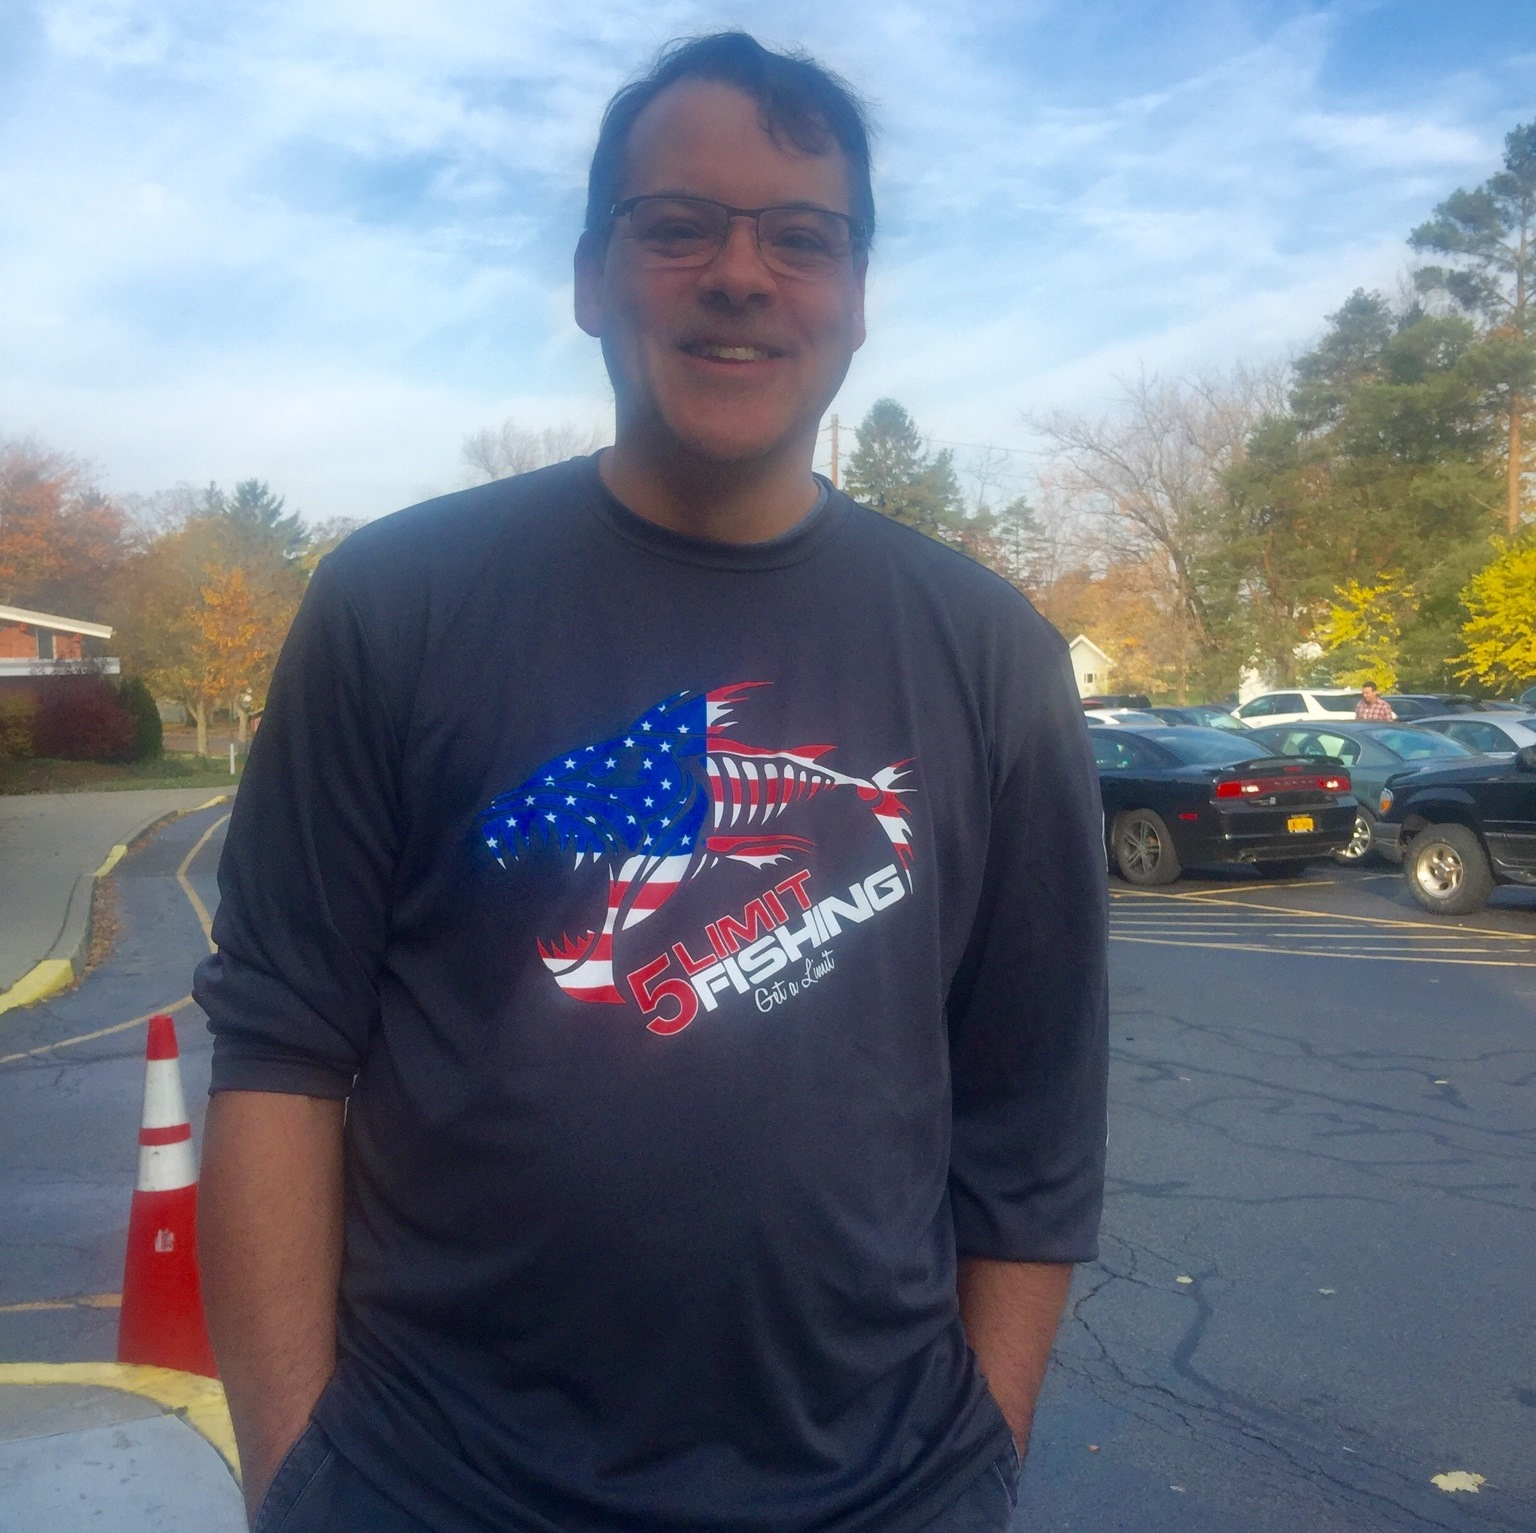 Joseph Murray of Orchard Park said he voted for Republican Donald Trump for president. Murray lives in the wealthiest election district in Erie County - a place that supported the Republican presidential candidates in 2008 and 2012.